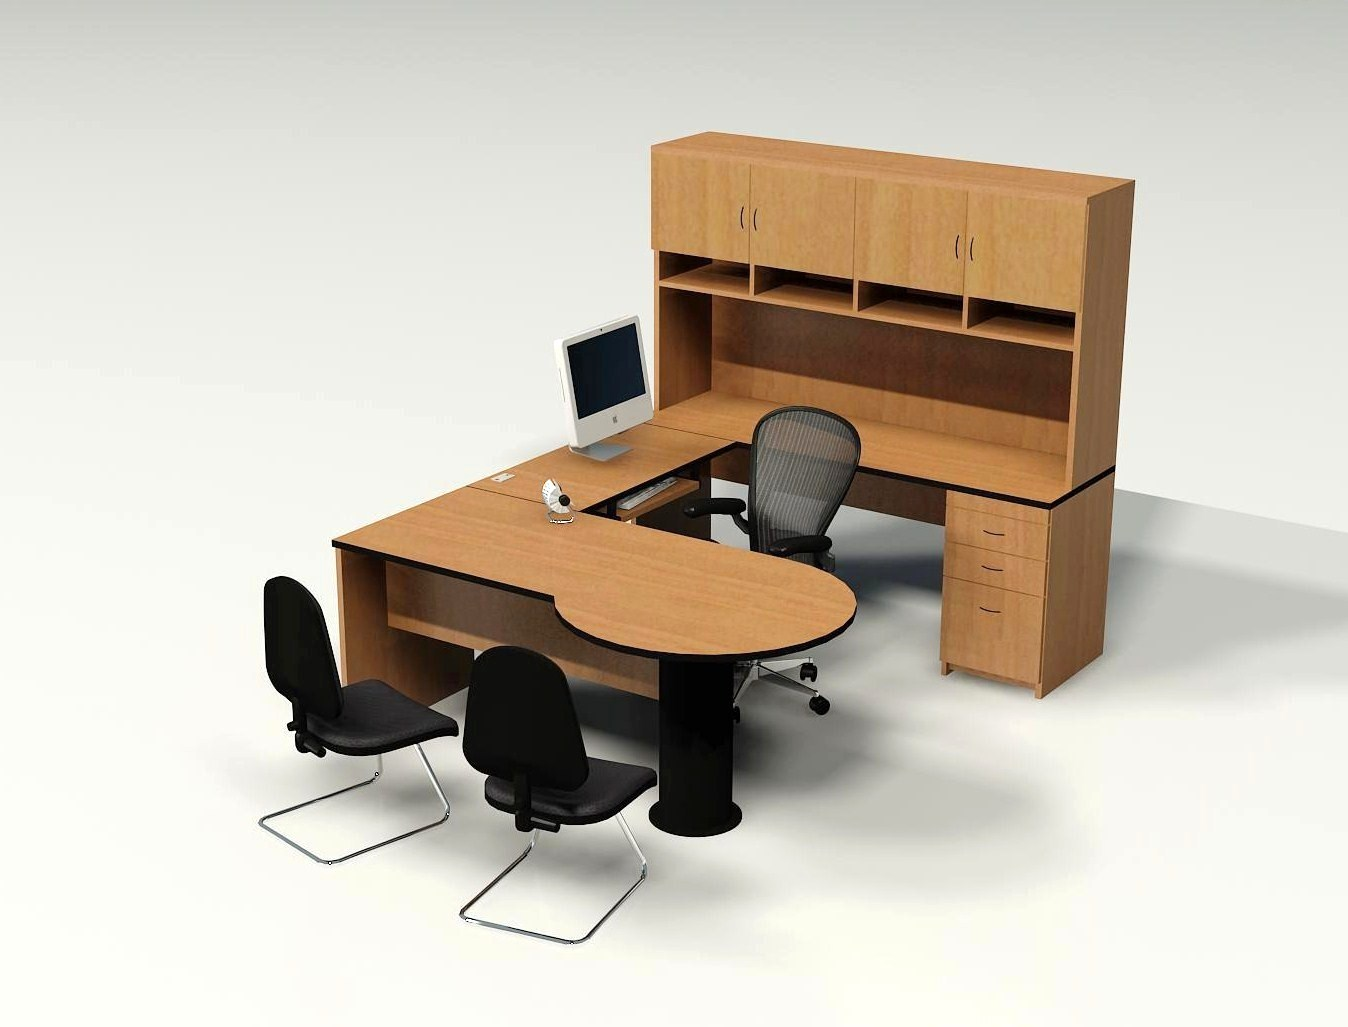 Office furniture gujarat spandan blog site - Office furnitur ...